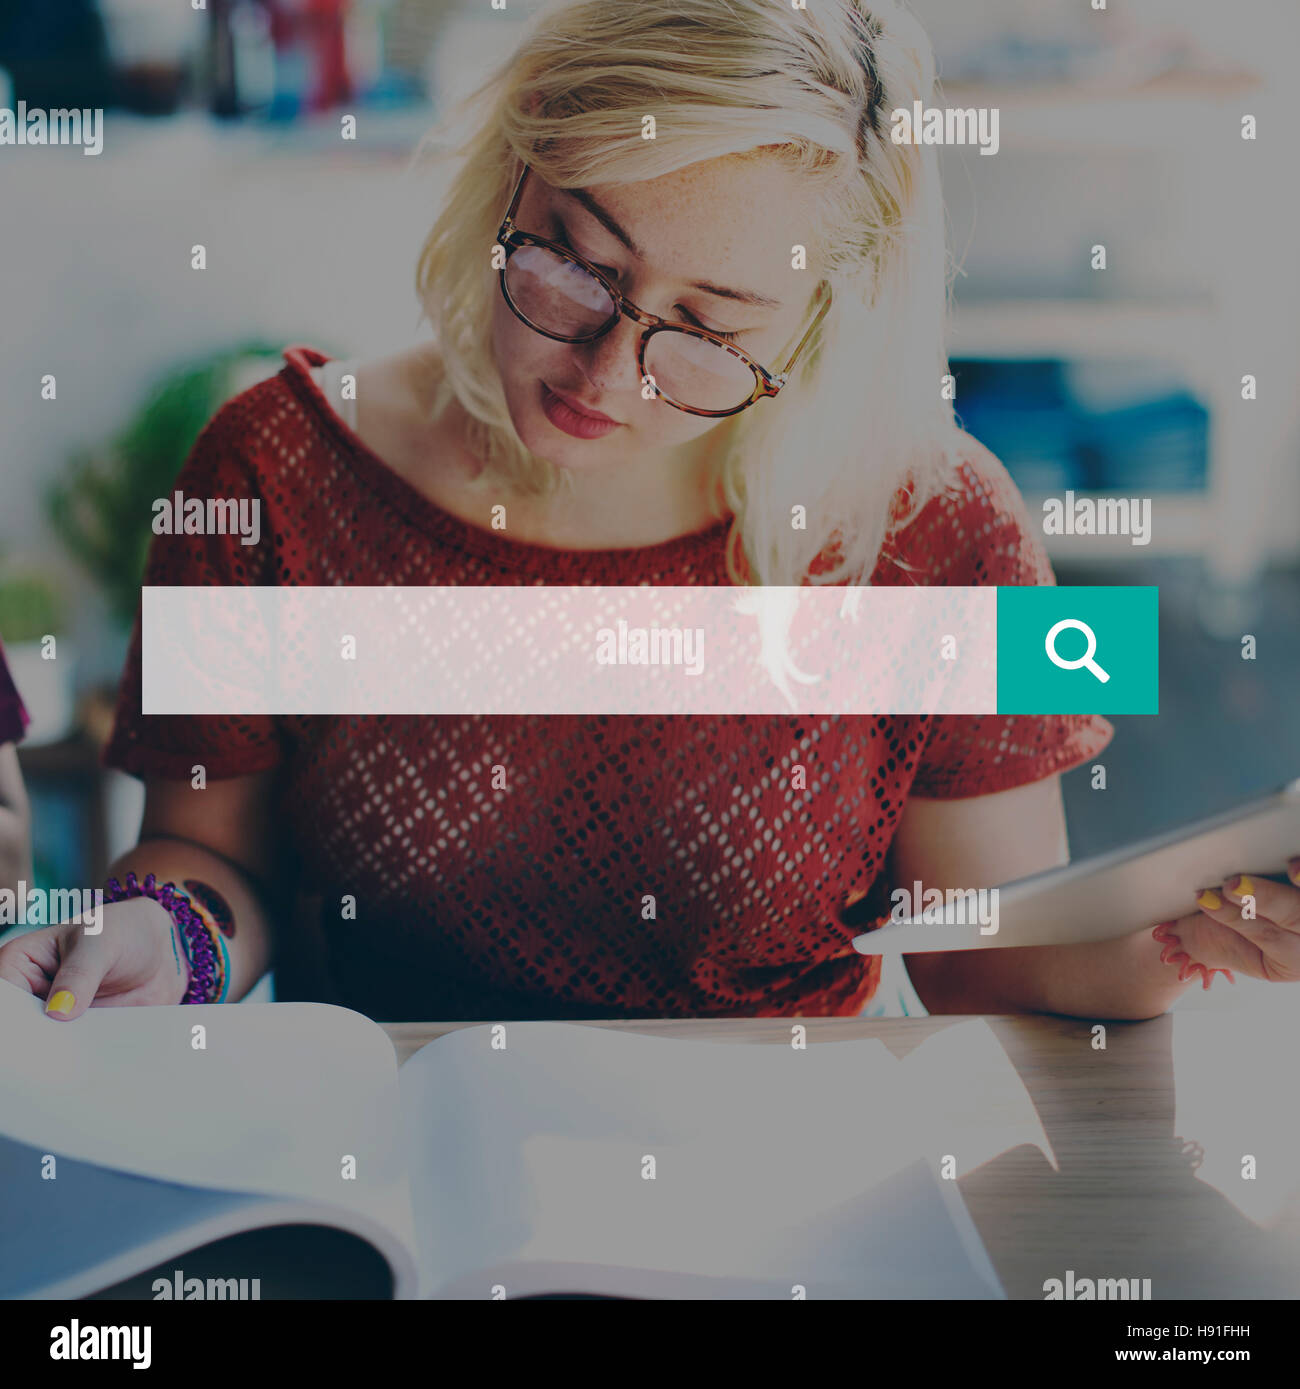 Search Finding Discover Optimisation Seeking Concept - Stock Image